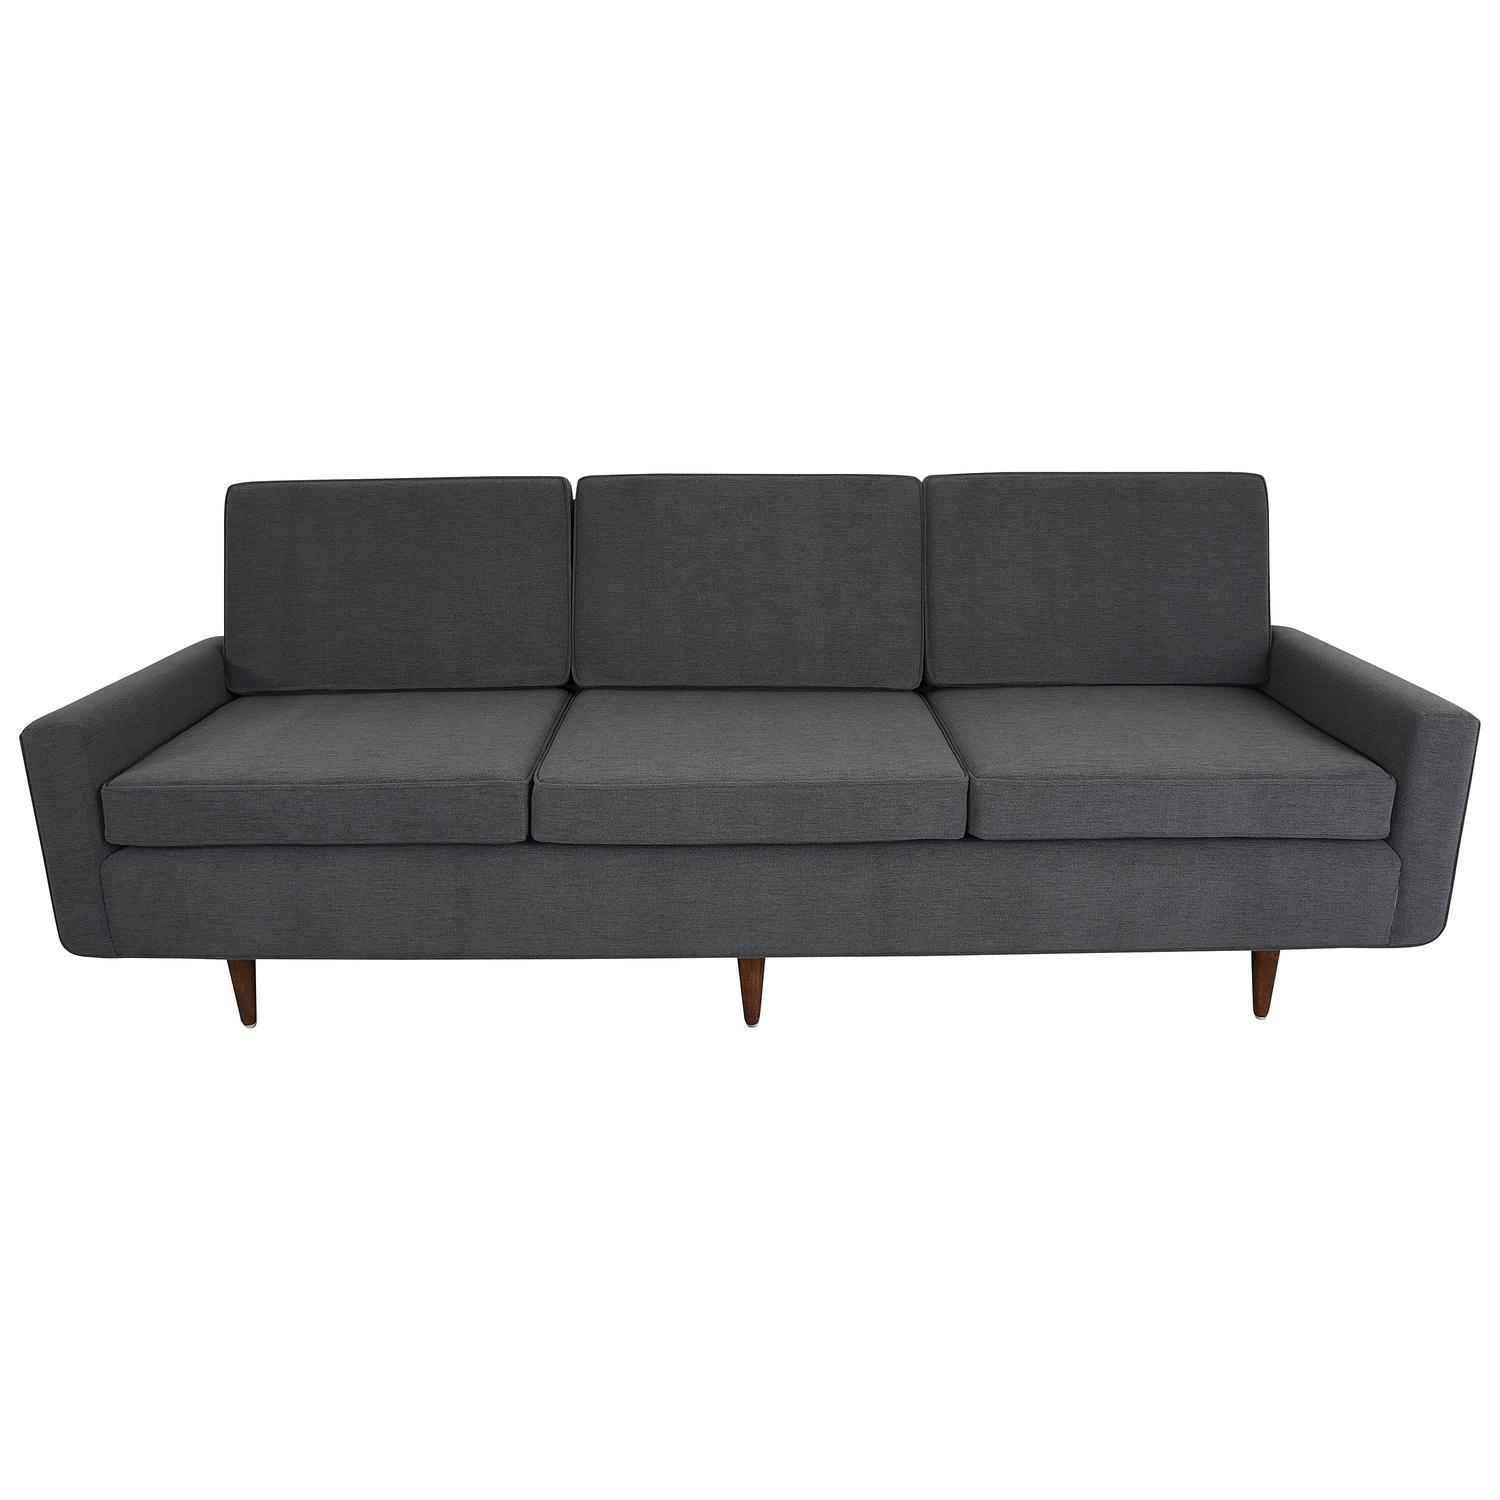 Florence Knoll Sofa Three Seat Sofa, Model 26, Pair Available For With Florence Knoll Leather Sofas (Image 11 of 20)